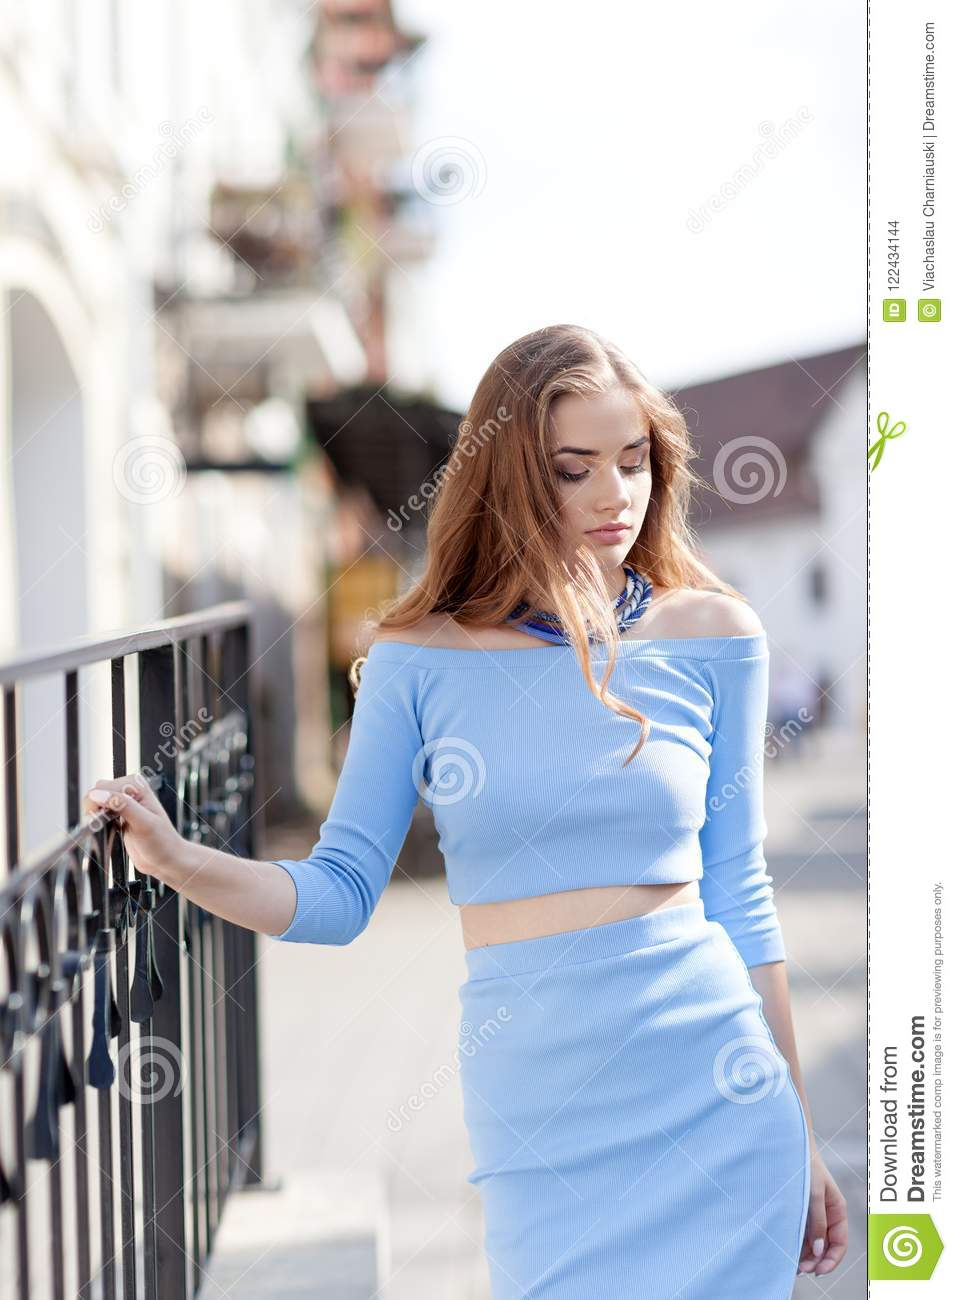 Portrait of a beautiful woman in a youth style on a city walk.